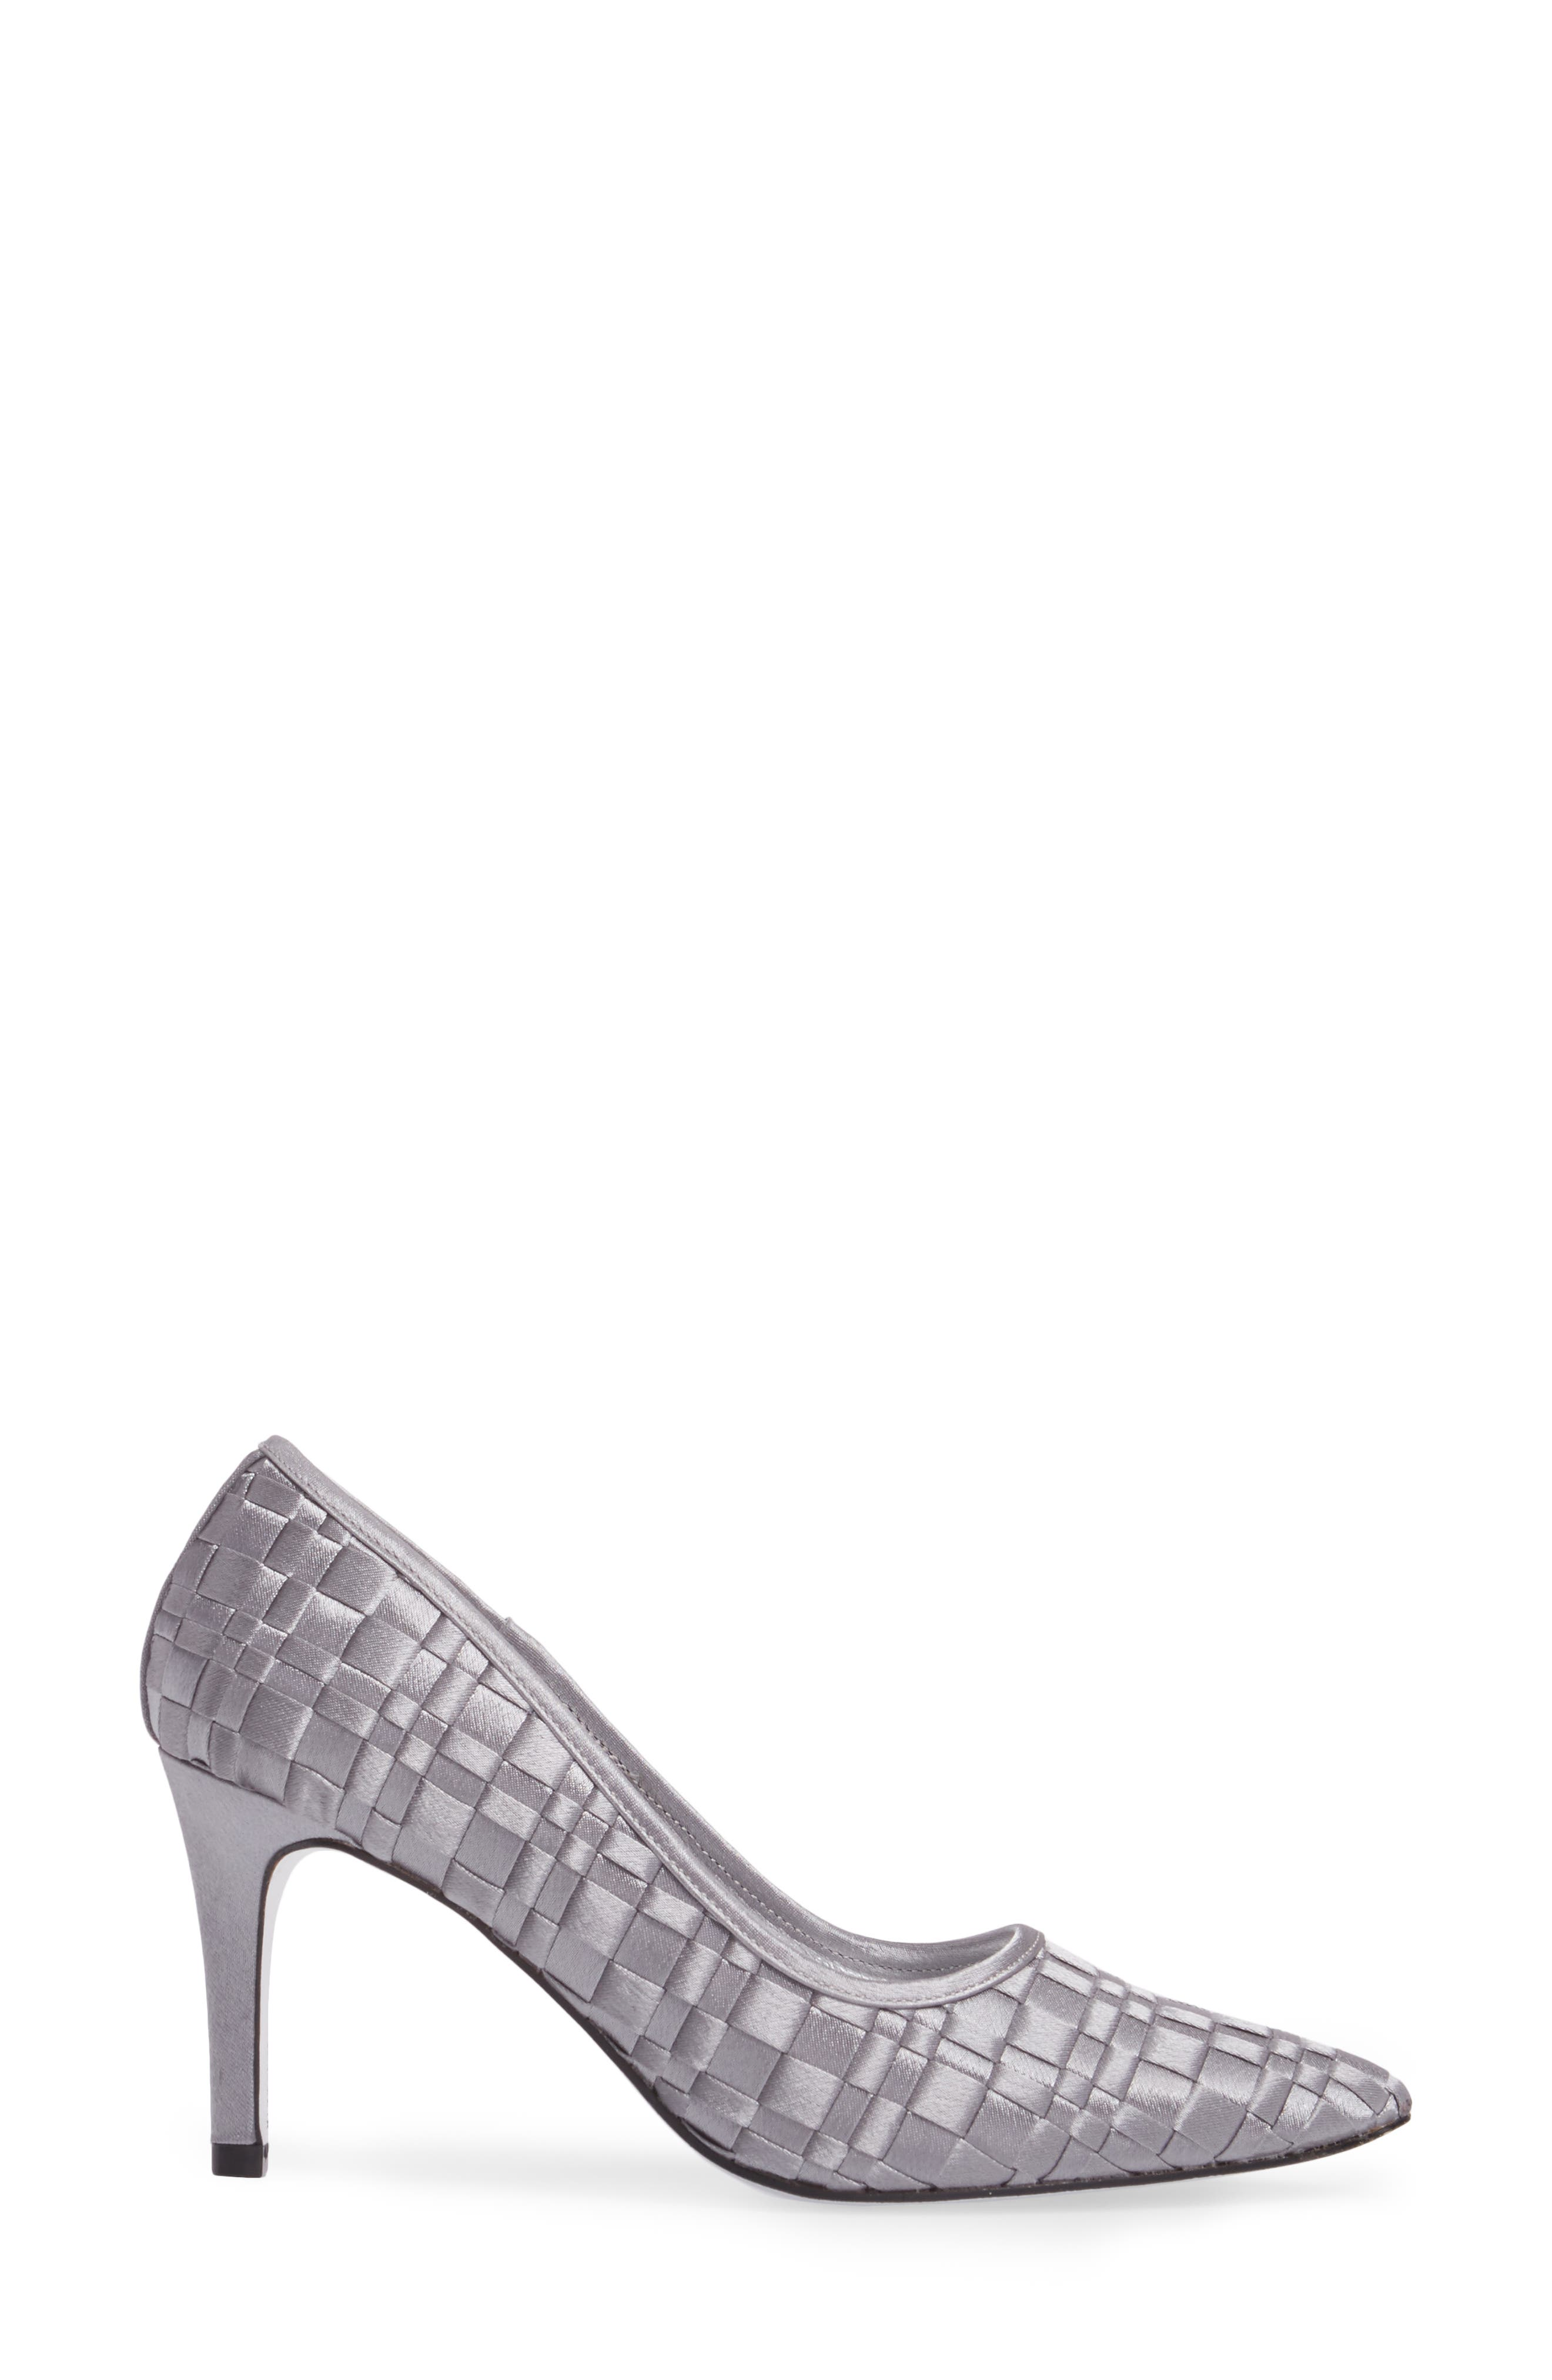 Hasting Pointy Toe Pump,                             Alternate thumbnail 3, color,                             020